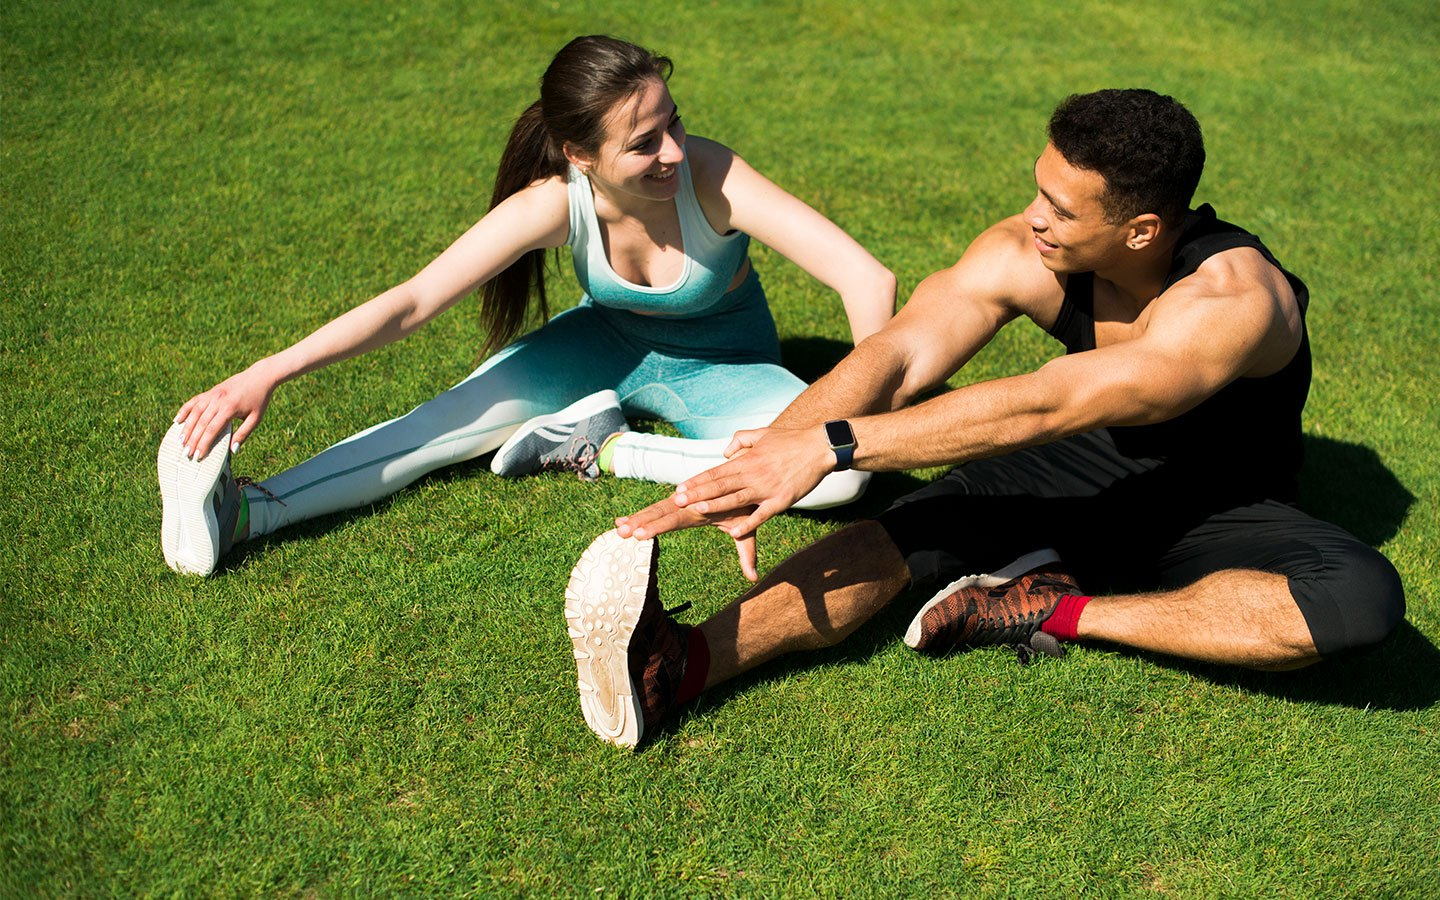 GRT Fitness 5 A few great exercising tips for Spring